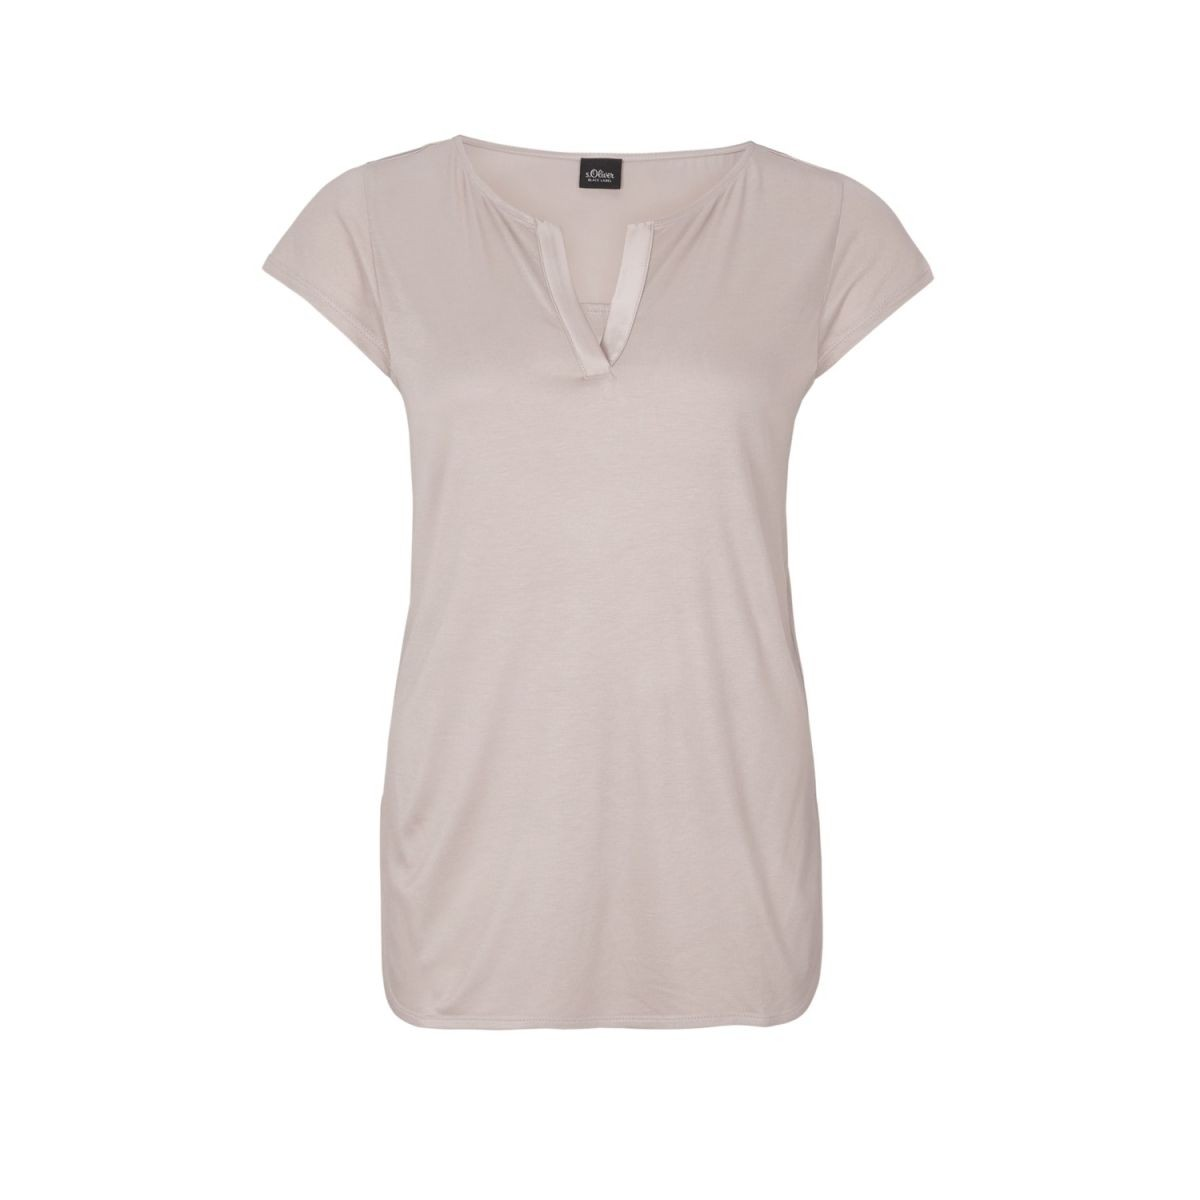 Premium-Auswahl 07714 09074 Long top with blouse details by s.Oliver Black Label - beige ...